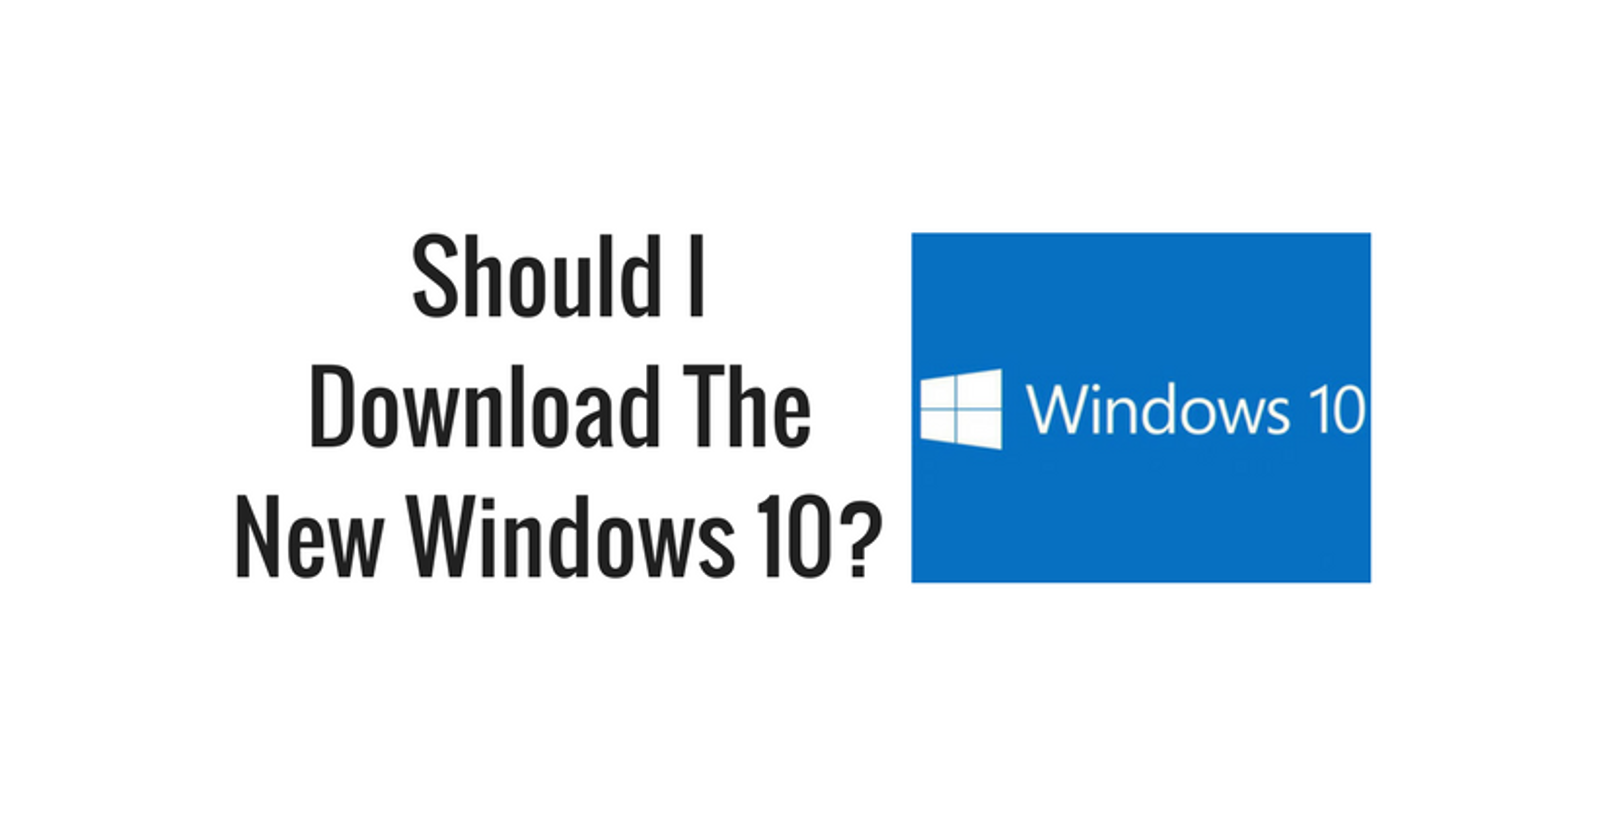 Should I Download the New Windows 10?